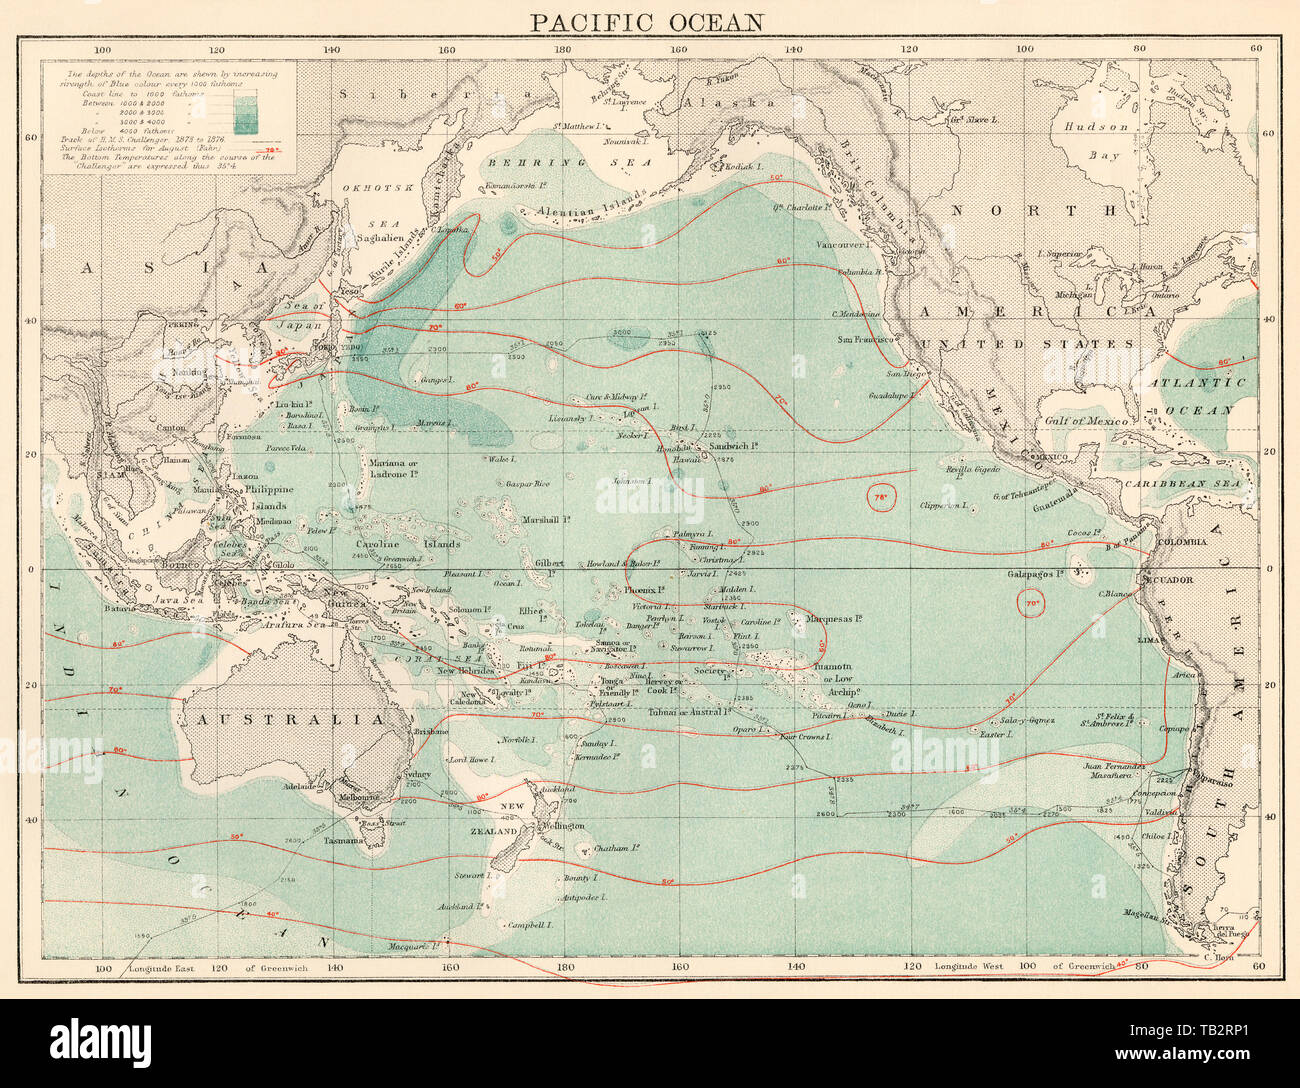 North Pacific Ocean Map High Resolution Stock Photography And Images Alamy